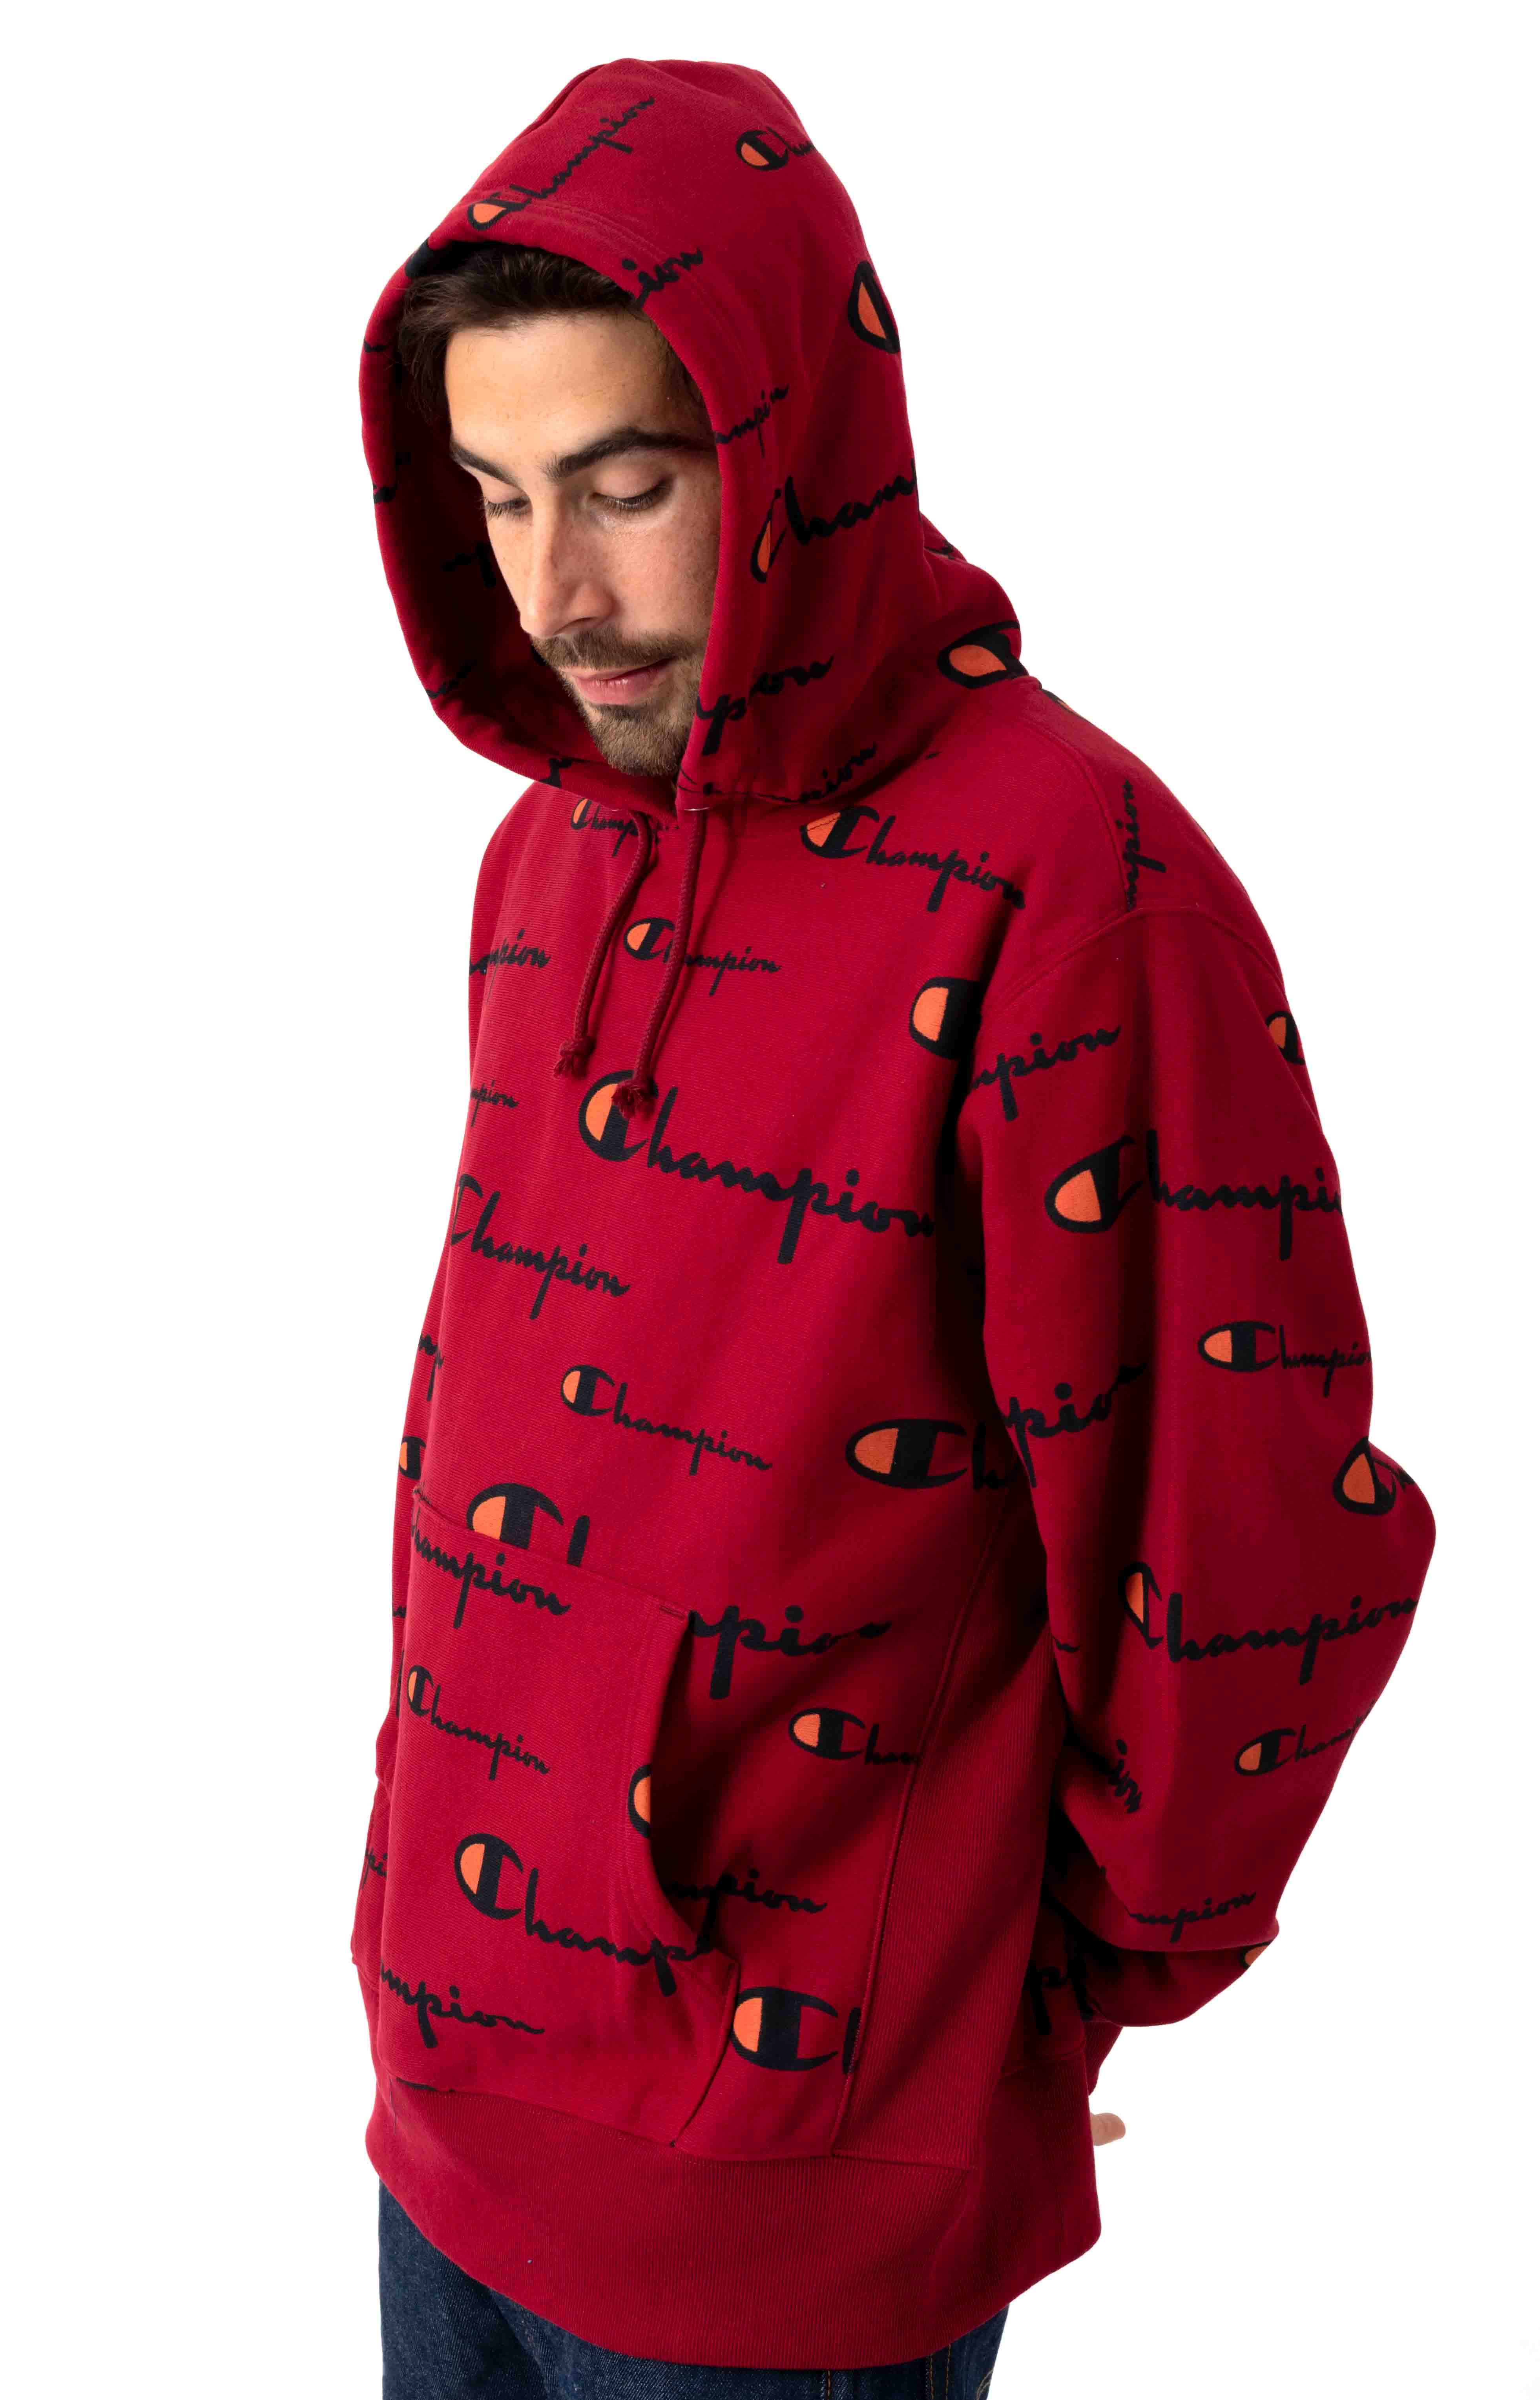 RW All Over Multi Scale Script Pullover Hoodie - Cherry Pie